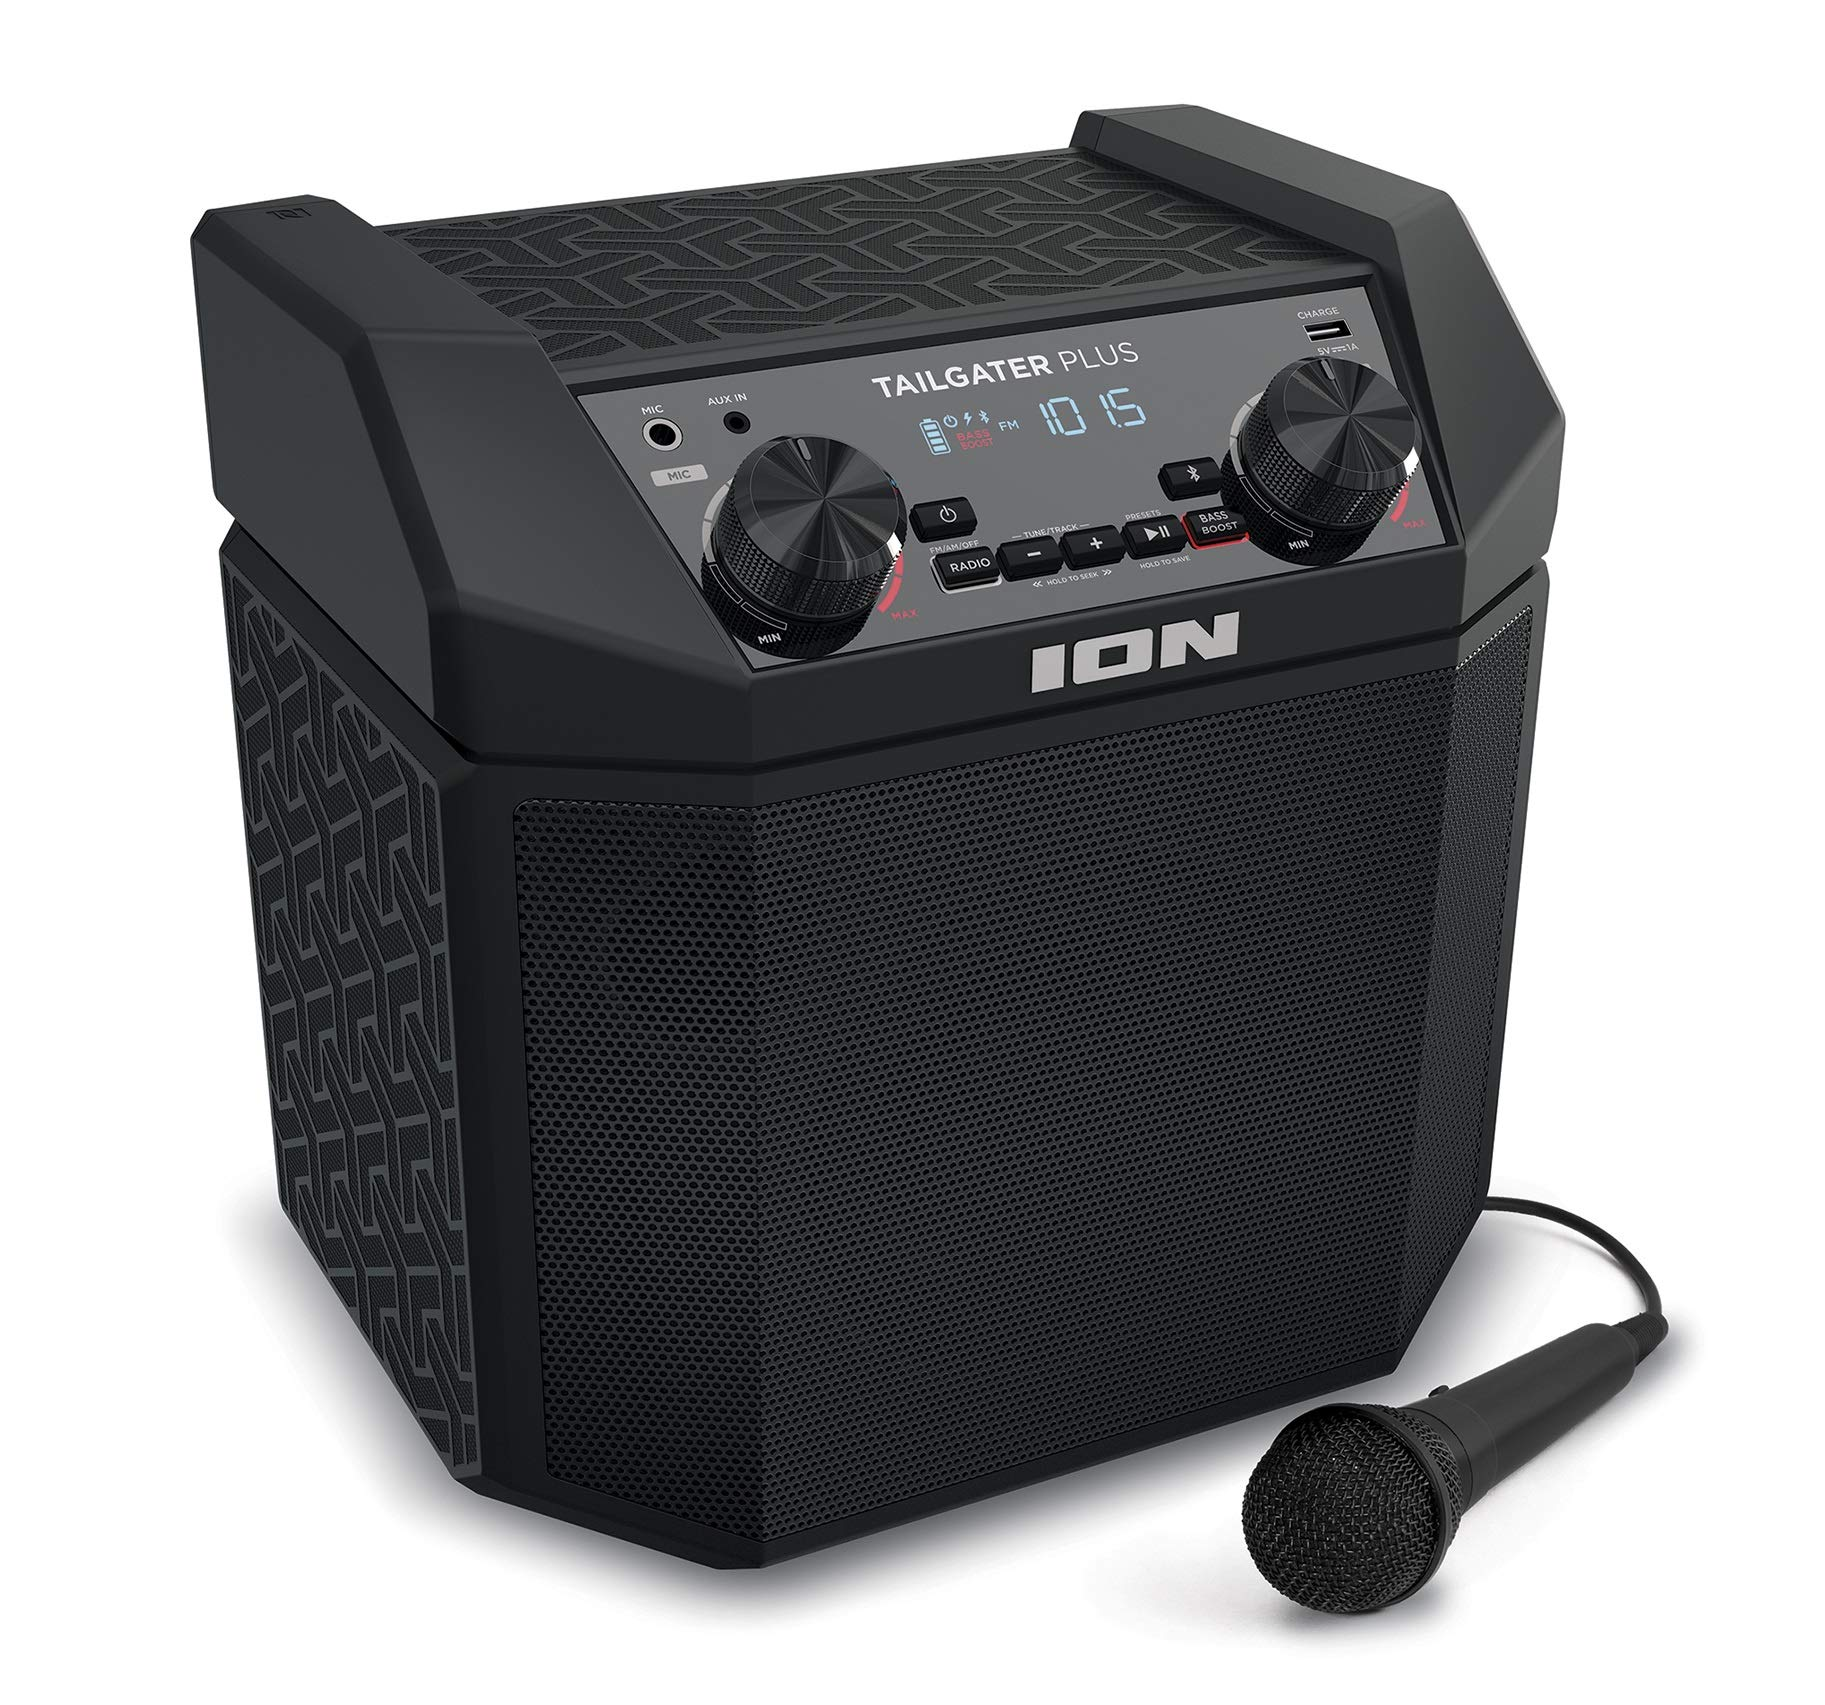 ION Audio Tailgater Plus | 50W Portable Speaker, Battery Powered with Bluetooth, Microphone & Cable, AM/FM Radio, Built-in Carry Handle and USB Charging For Smartphones & Tablets by ION Audio